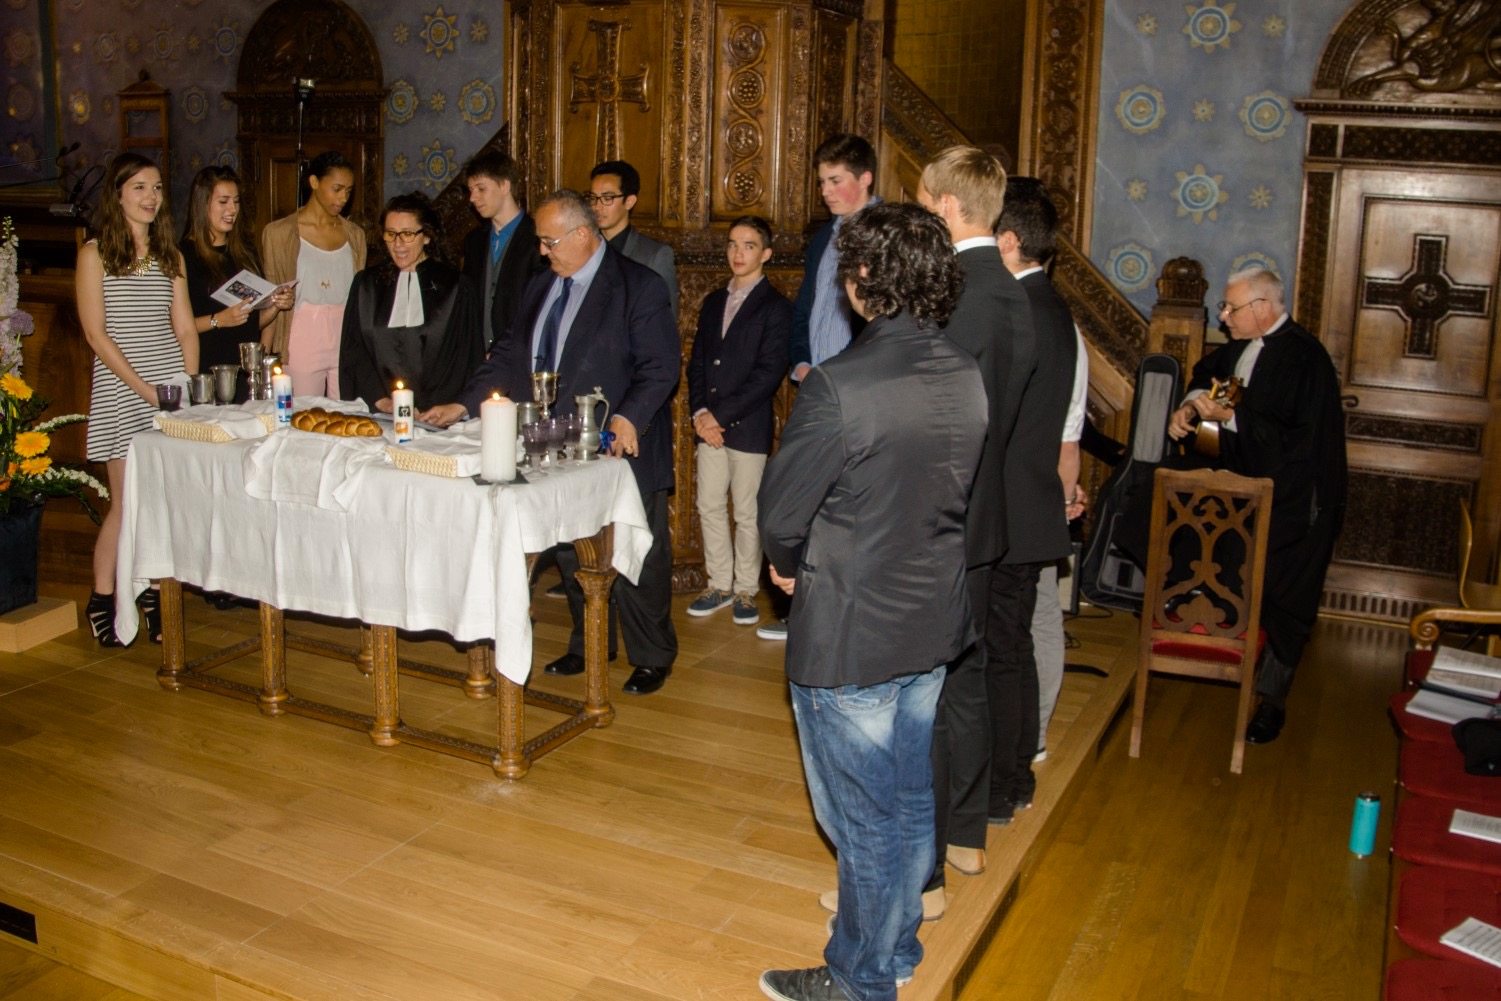 Confirmation Carouge 2015 173-2